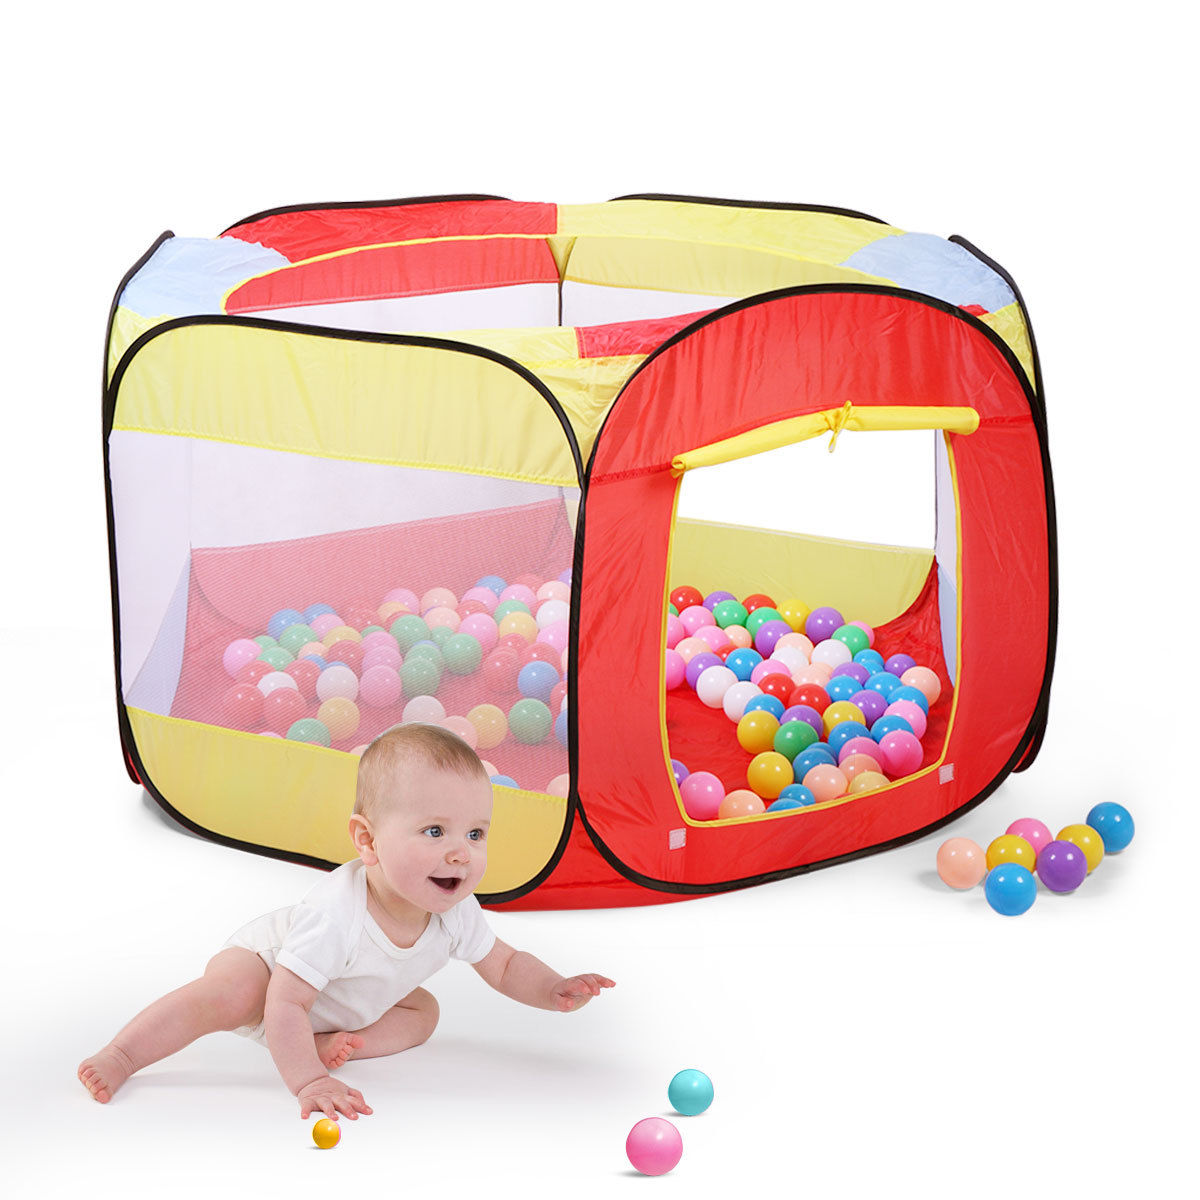 Folding Portable Playpen Baby Play Yard With Travel Bag Indoor Outdoor Safety